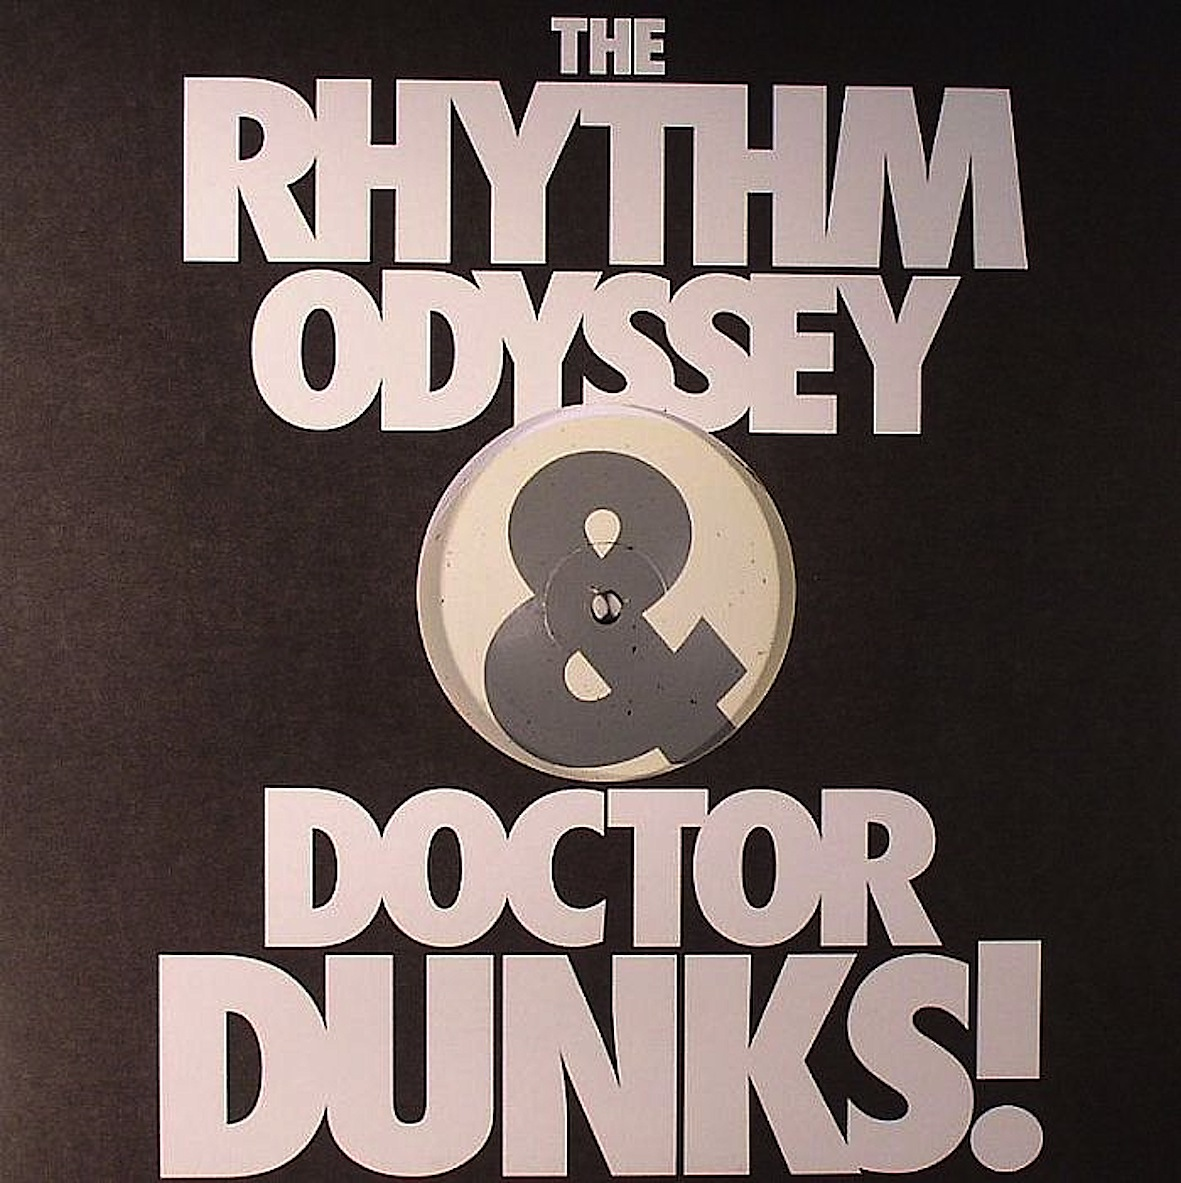 Test Pressing, Reviews, Promo`d, Dr Rob, Rhythm Odyssey, Dr Dunks, Eric Duncan, Dean Meredith, Golf Channel, Phil South